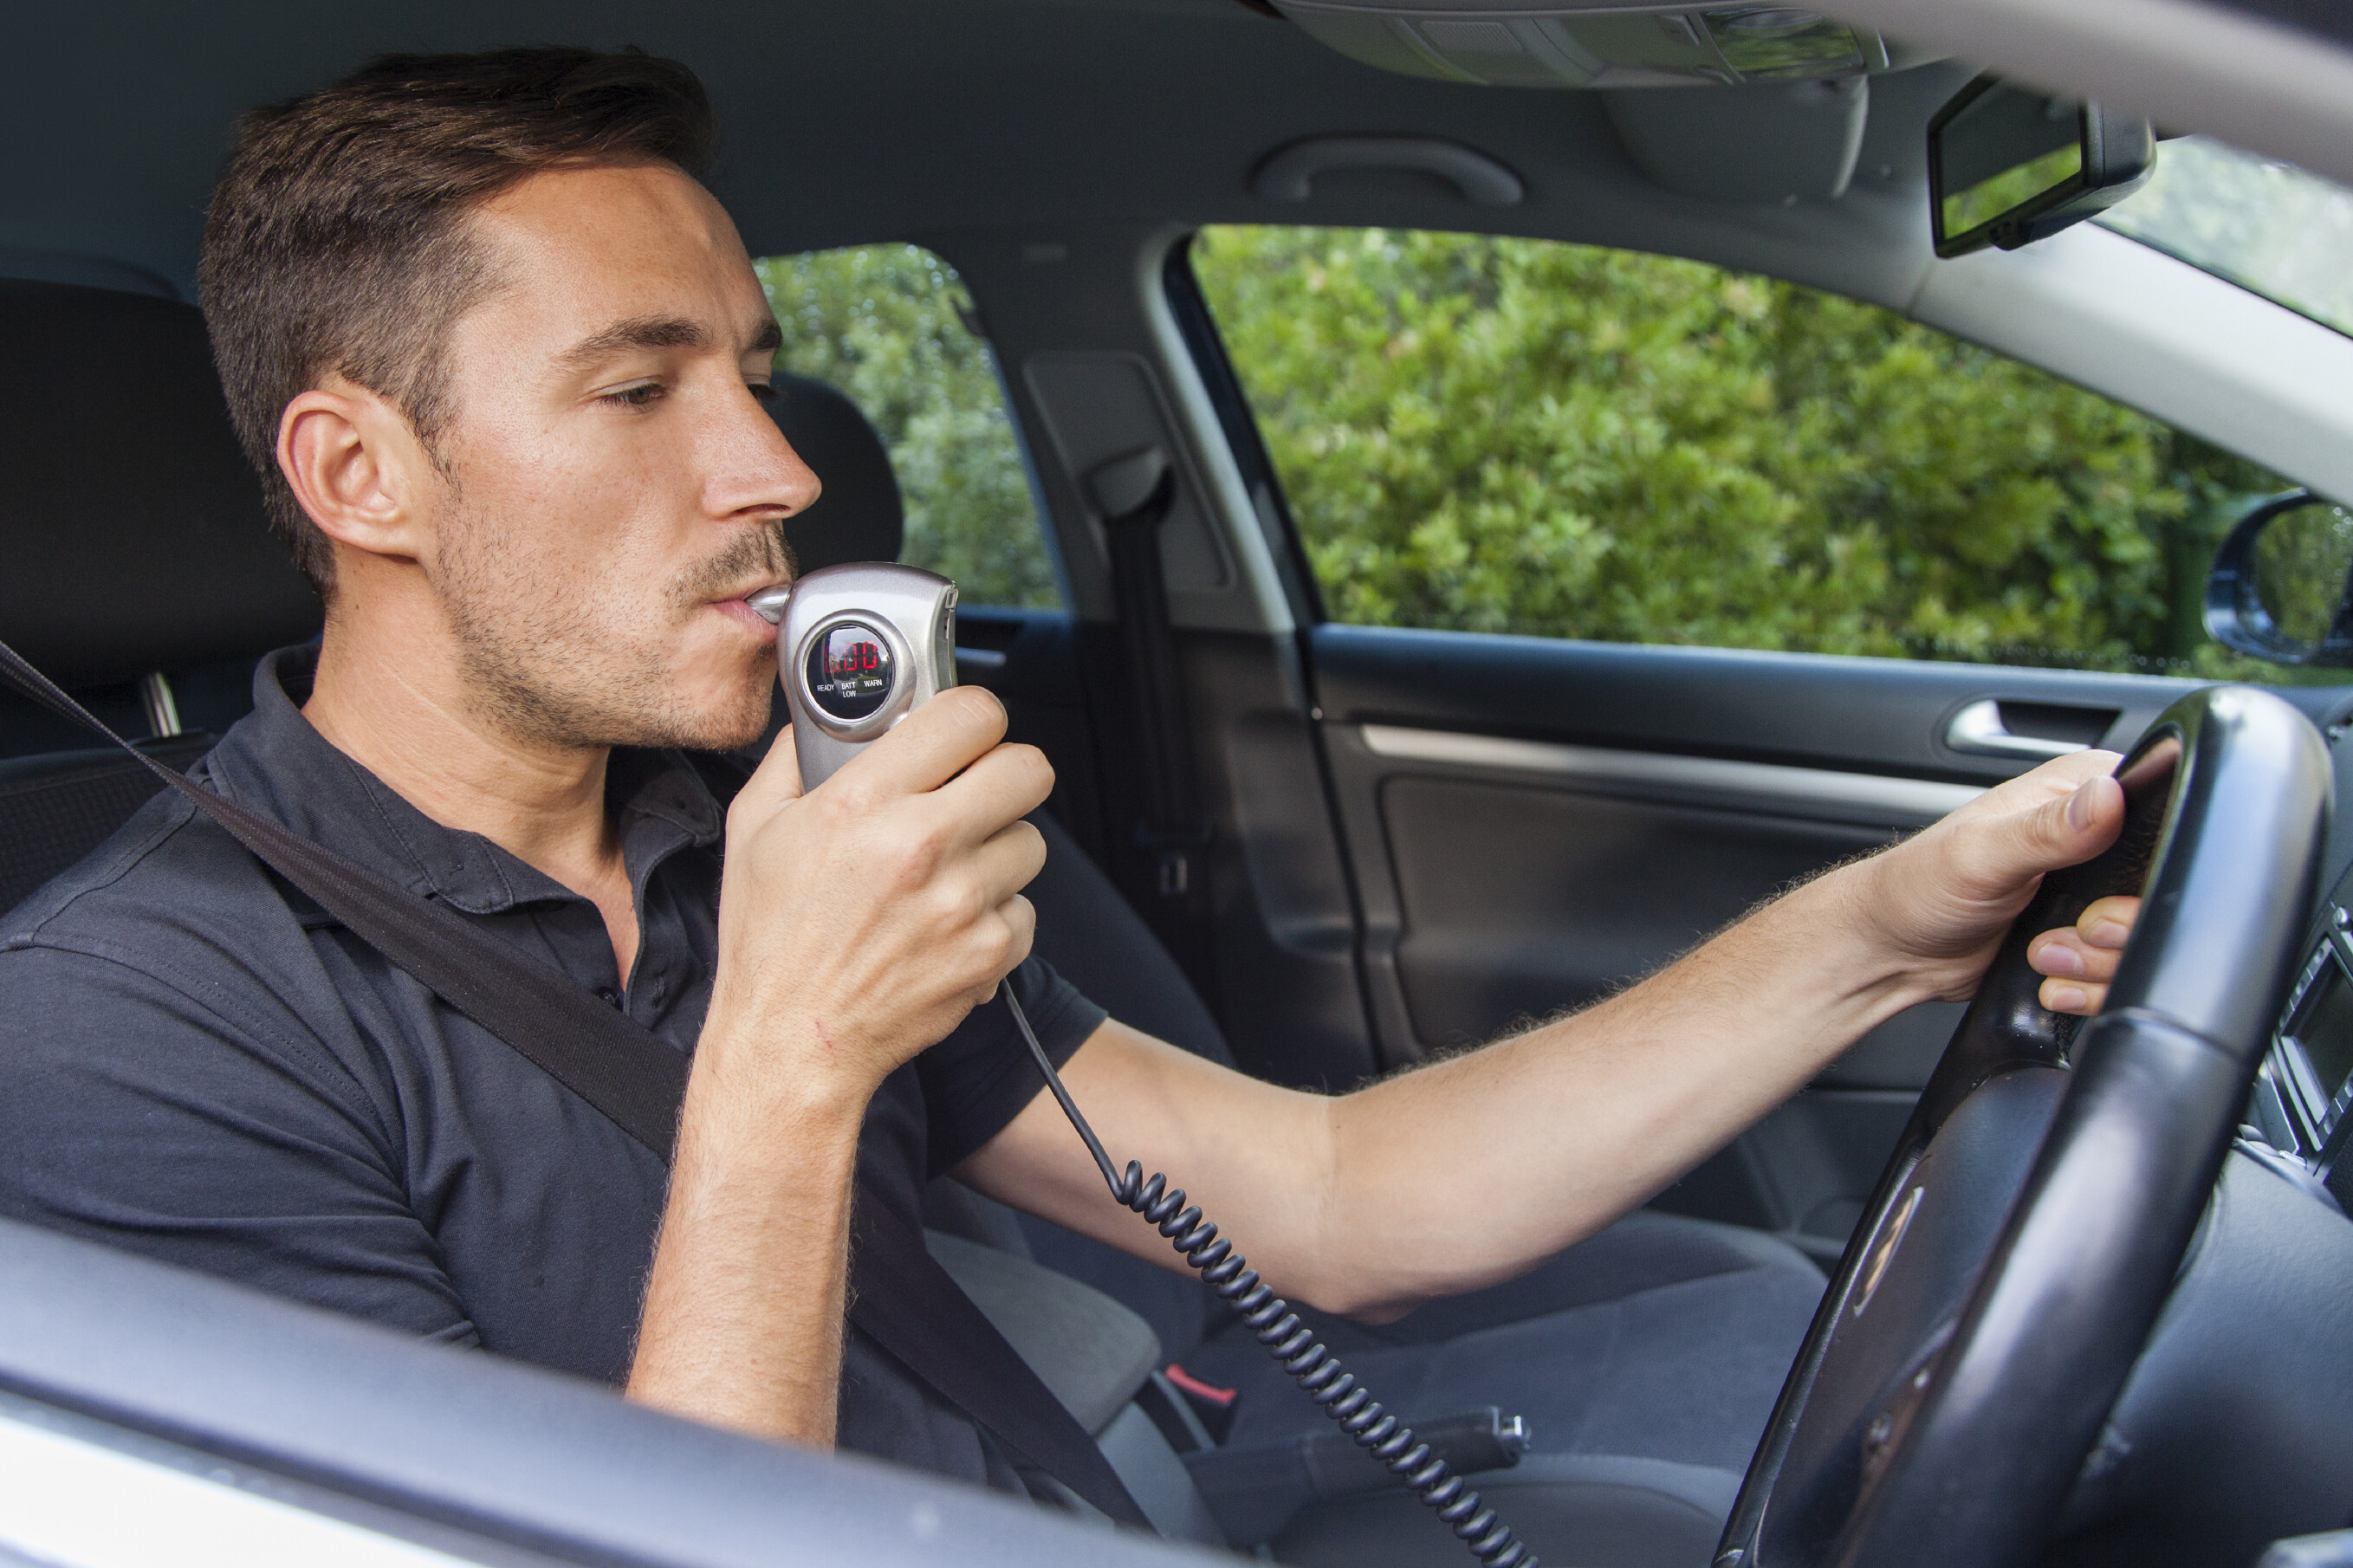 The Breath Alcohol Ignition Interlock Device And How It Works